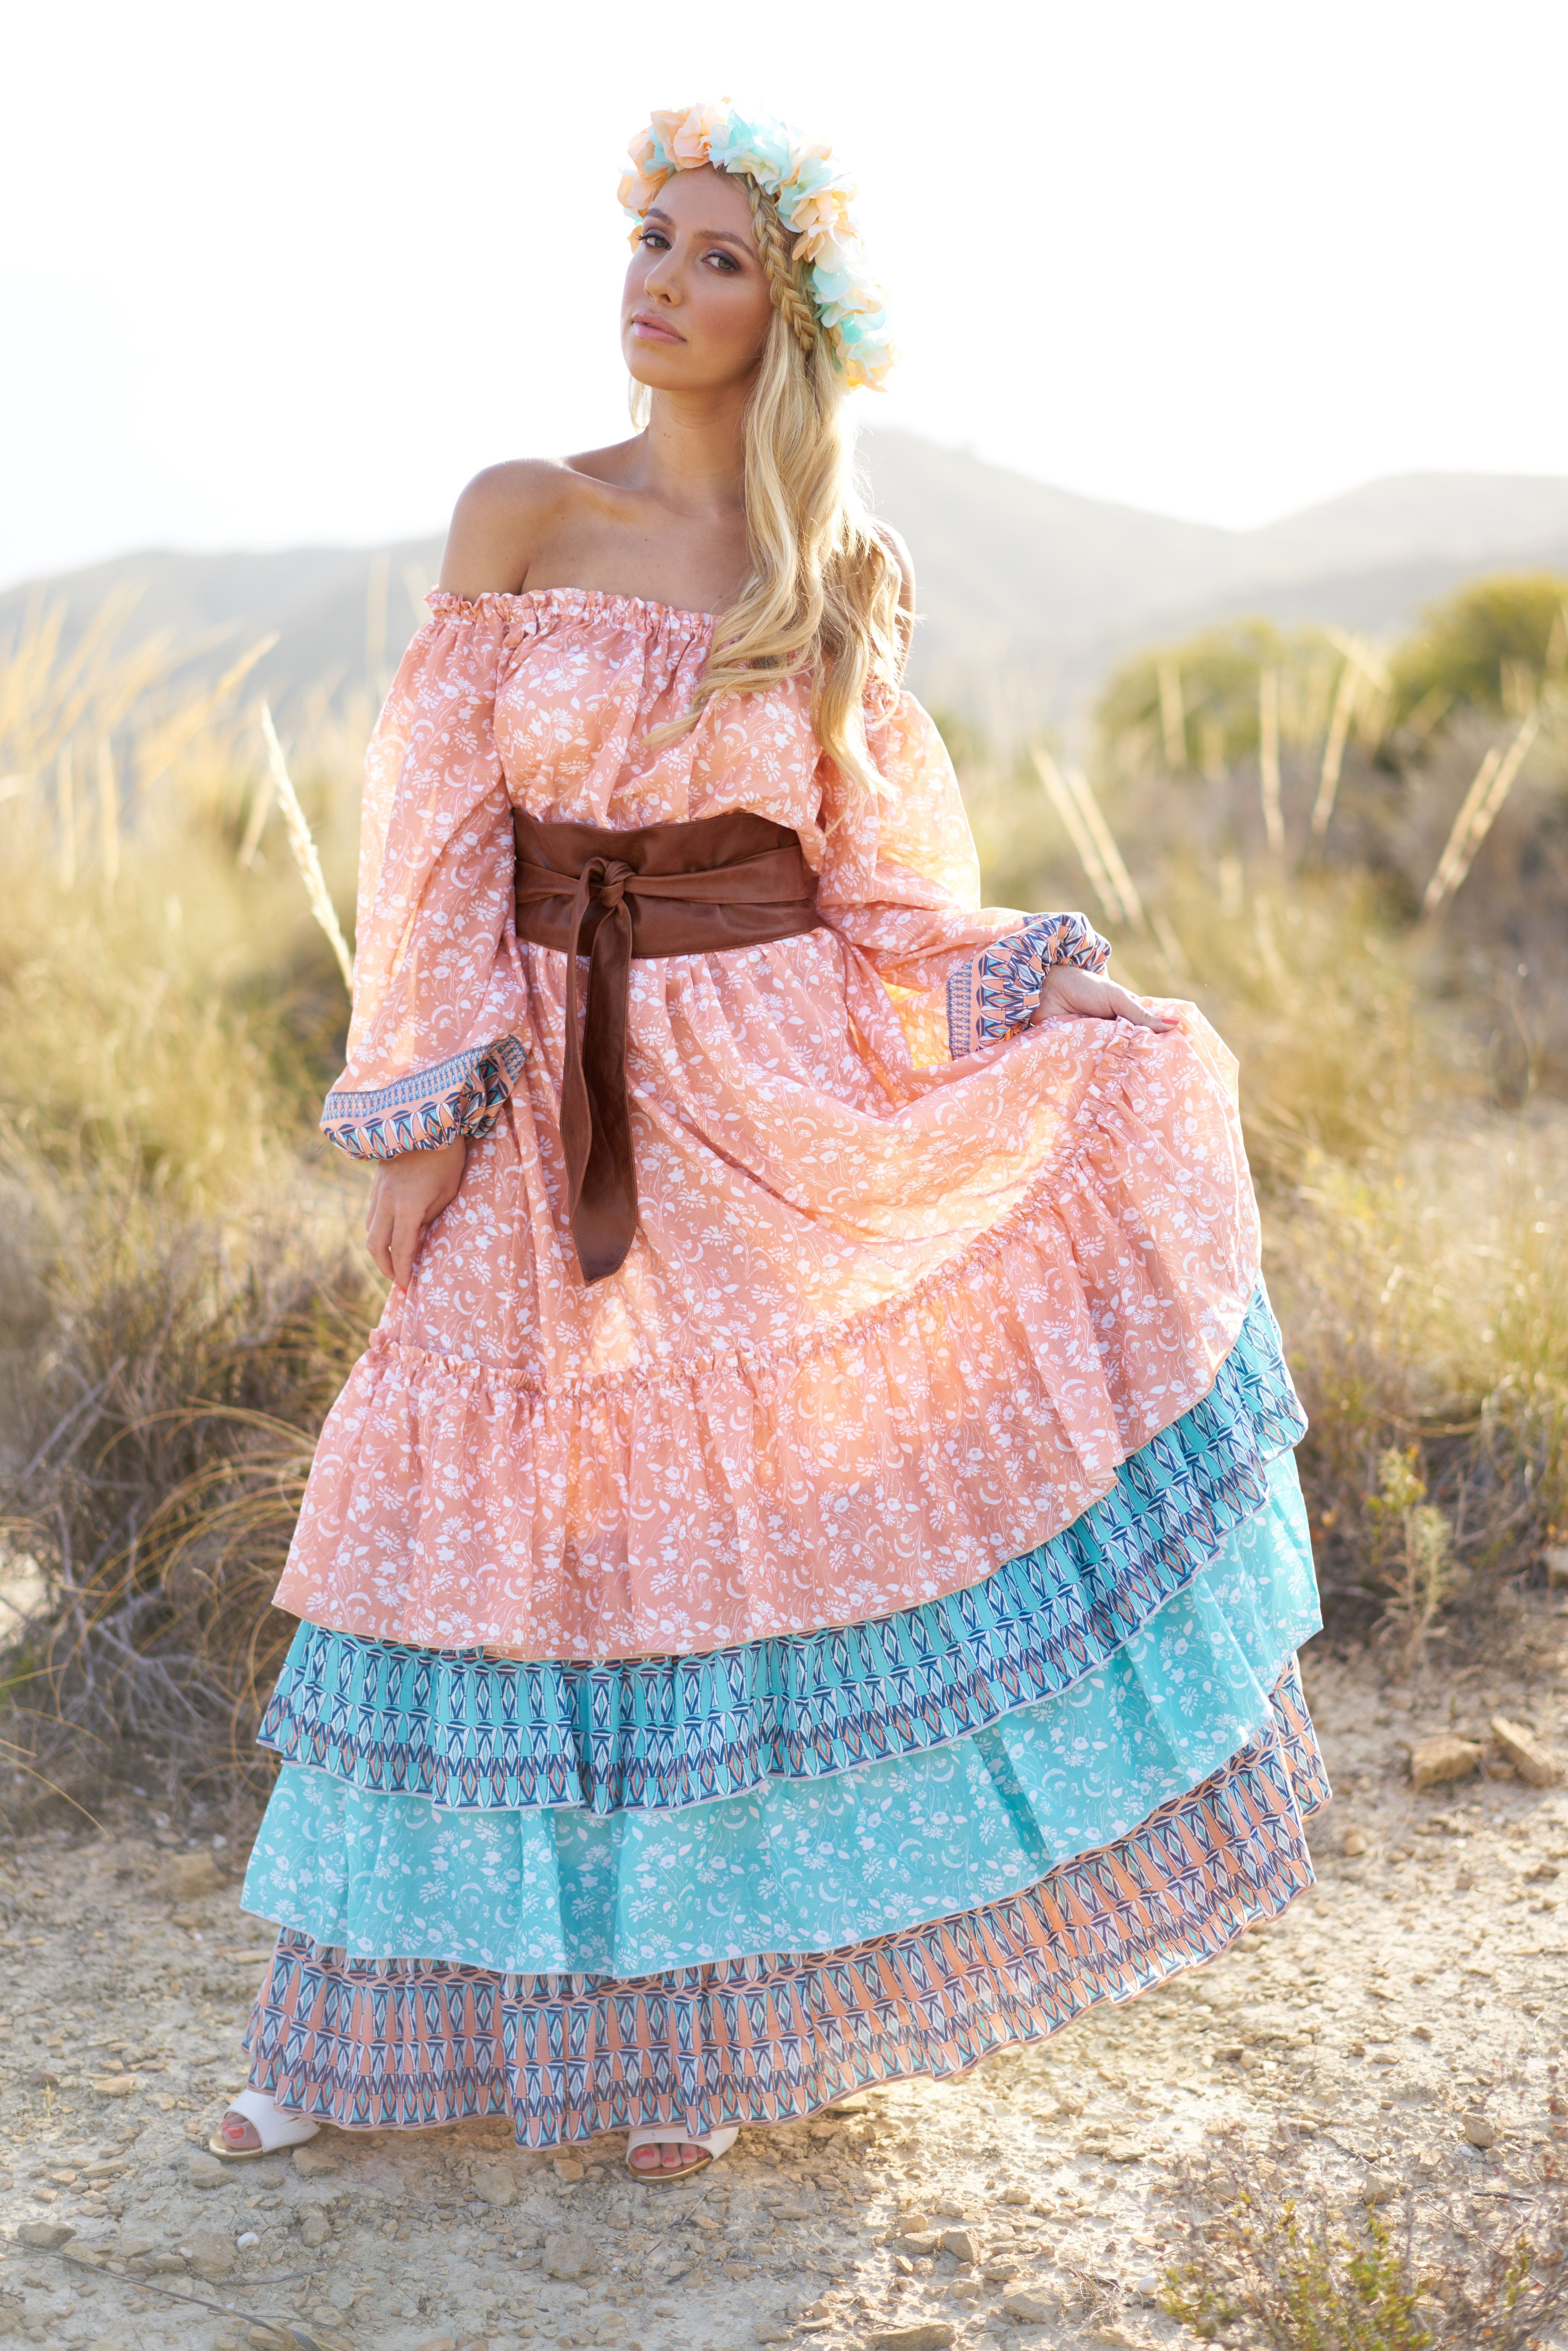 The \'Tobago\' Gypsy Dress Use the promo code \